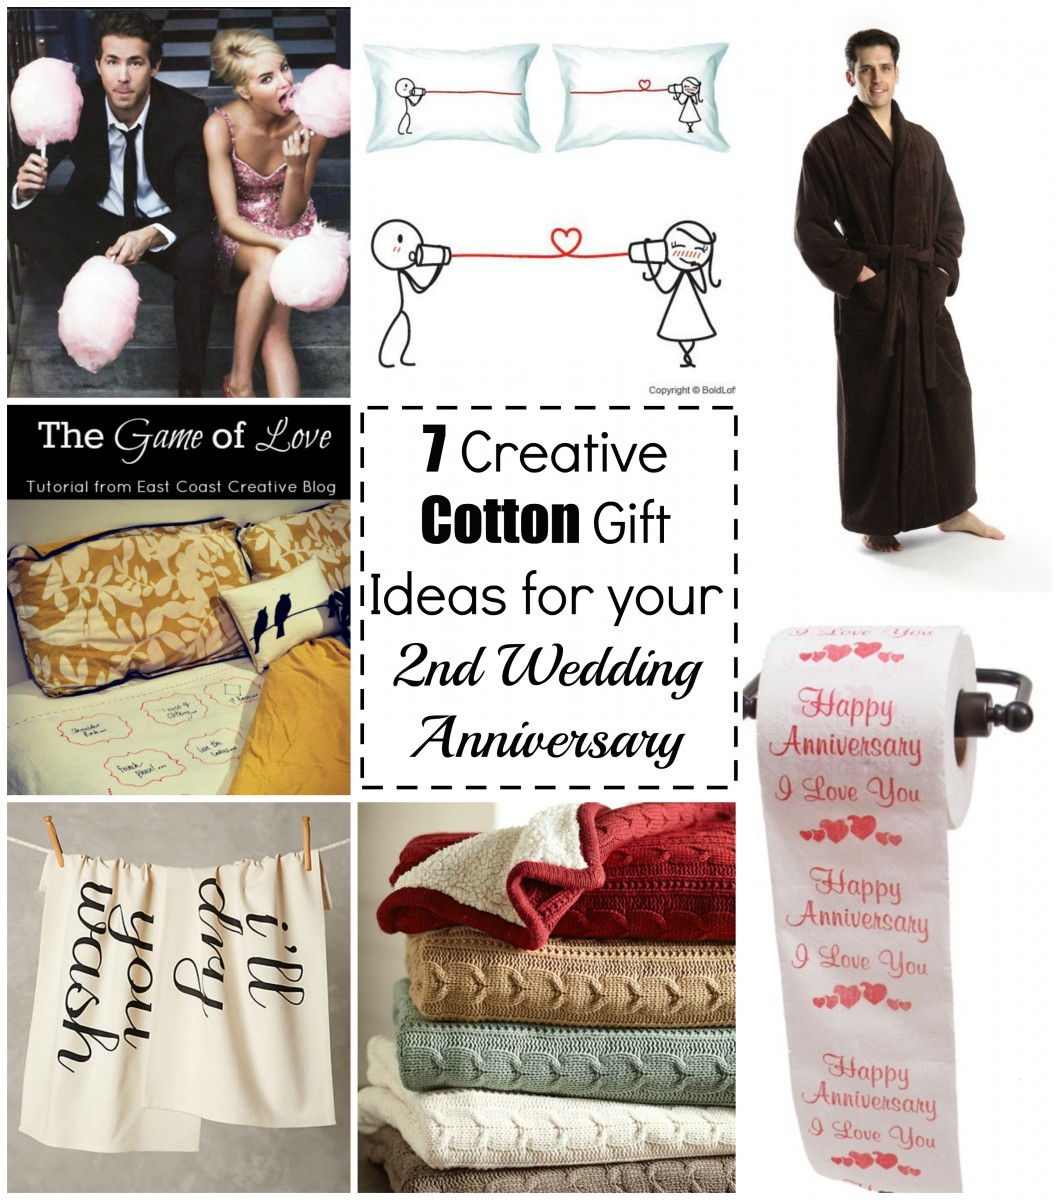 Wedding Gifts For 2nd Marriages : creative cotton gift ideas for your 2nd wedding anniversary her ...